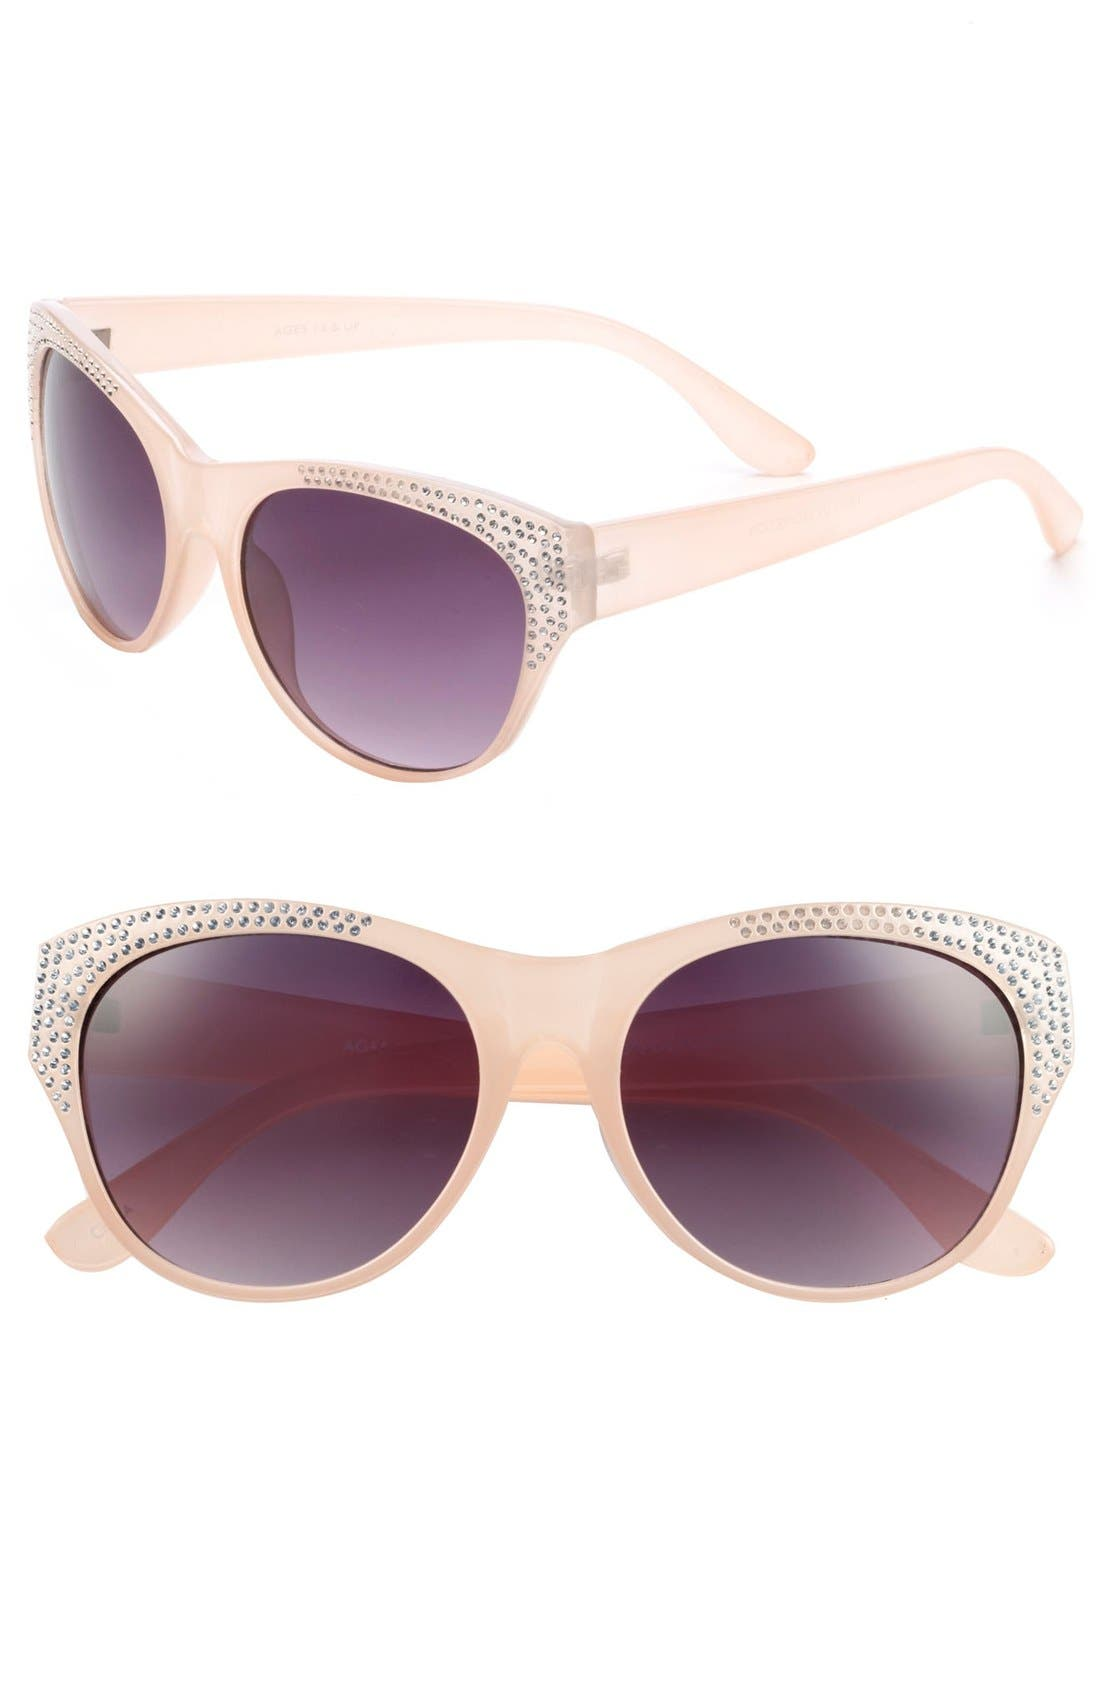 Alternate Image 1 Selected - Fantas Eyes Rhinestone Stud Sunglasses